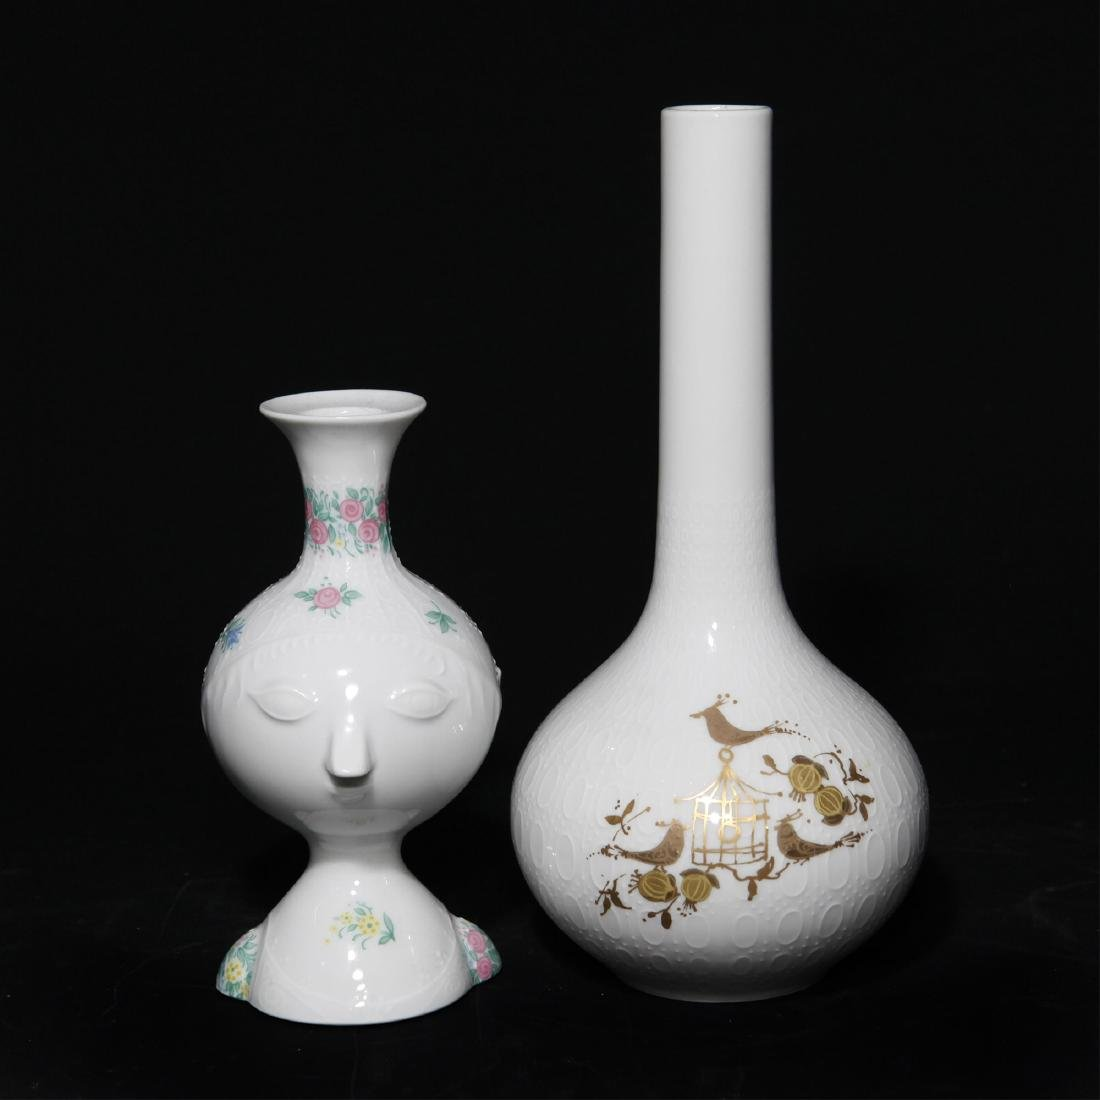 Group of 2 Rosenthal Bjorn Wiinblad Vases